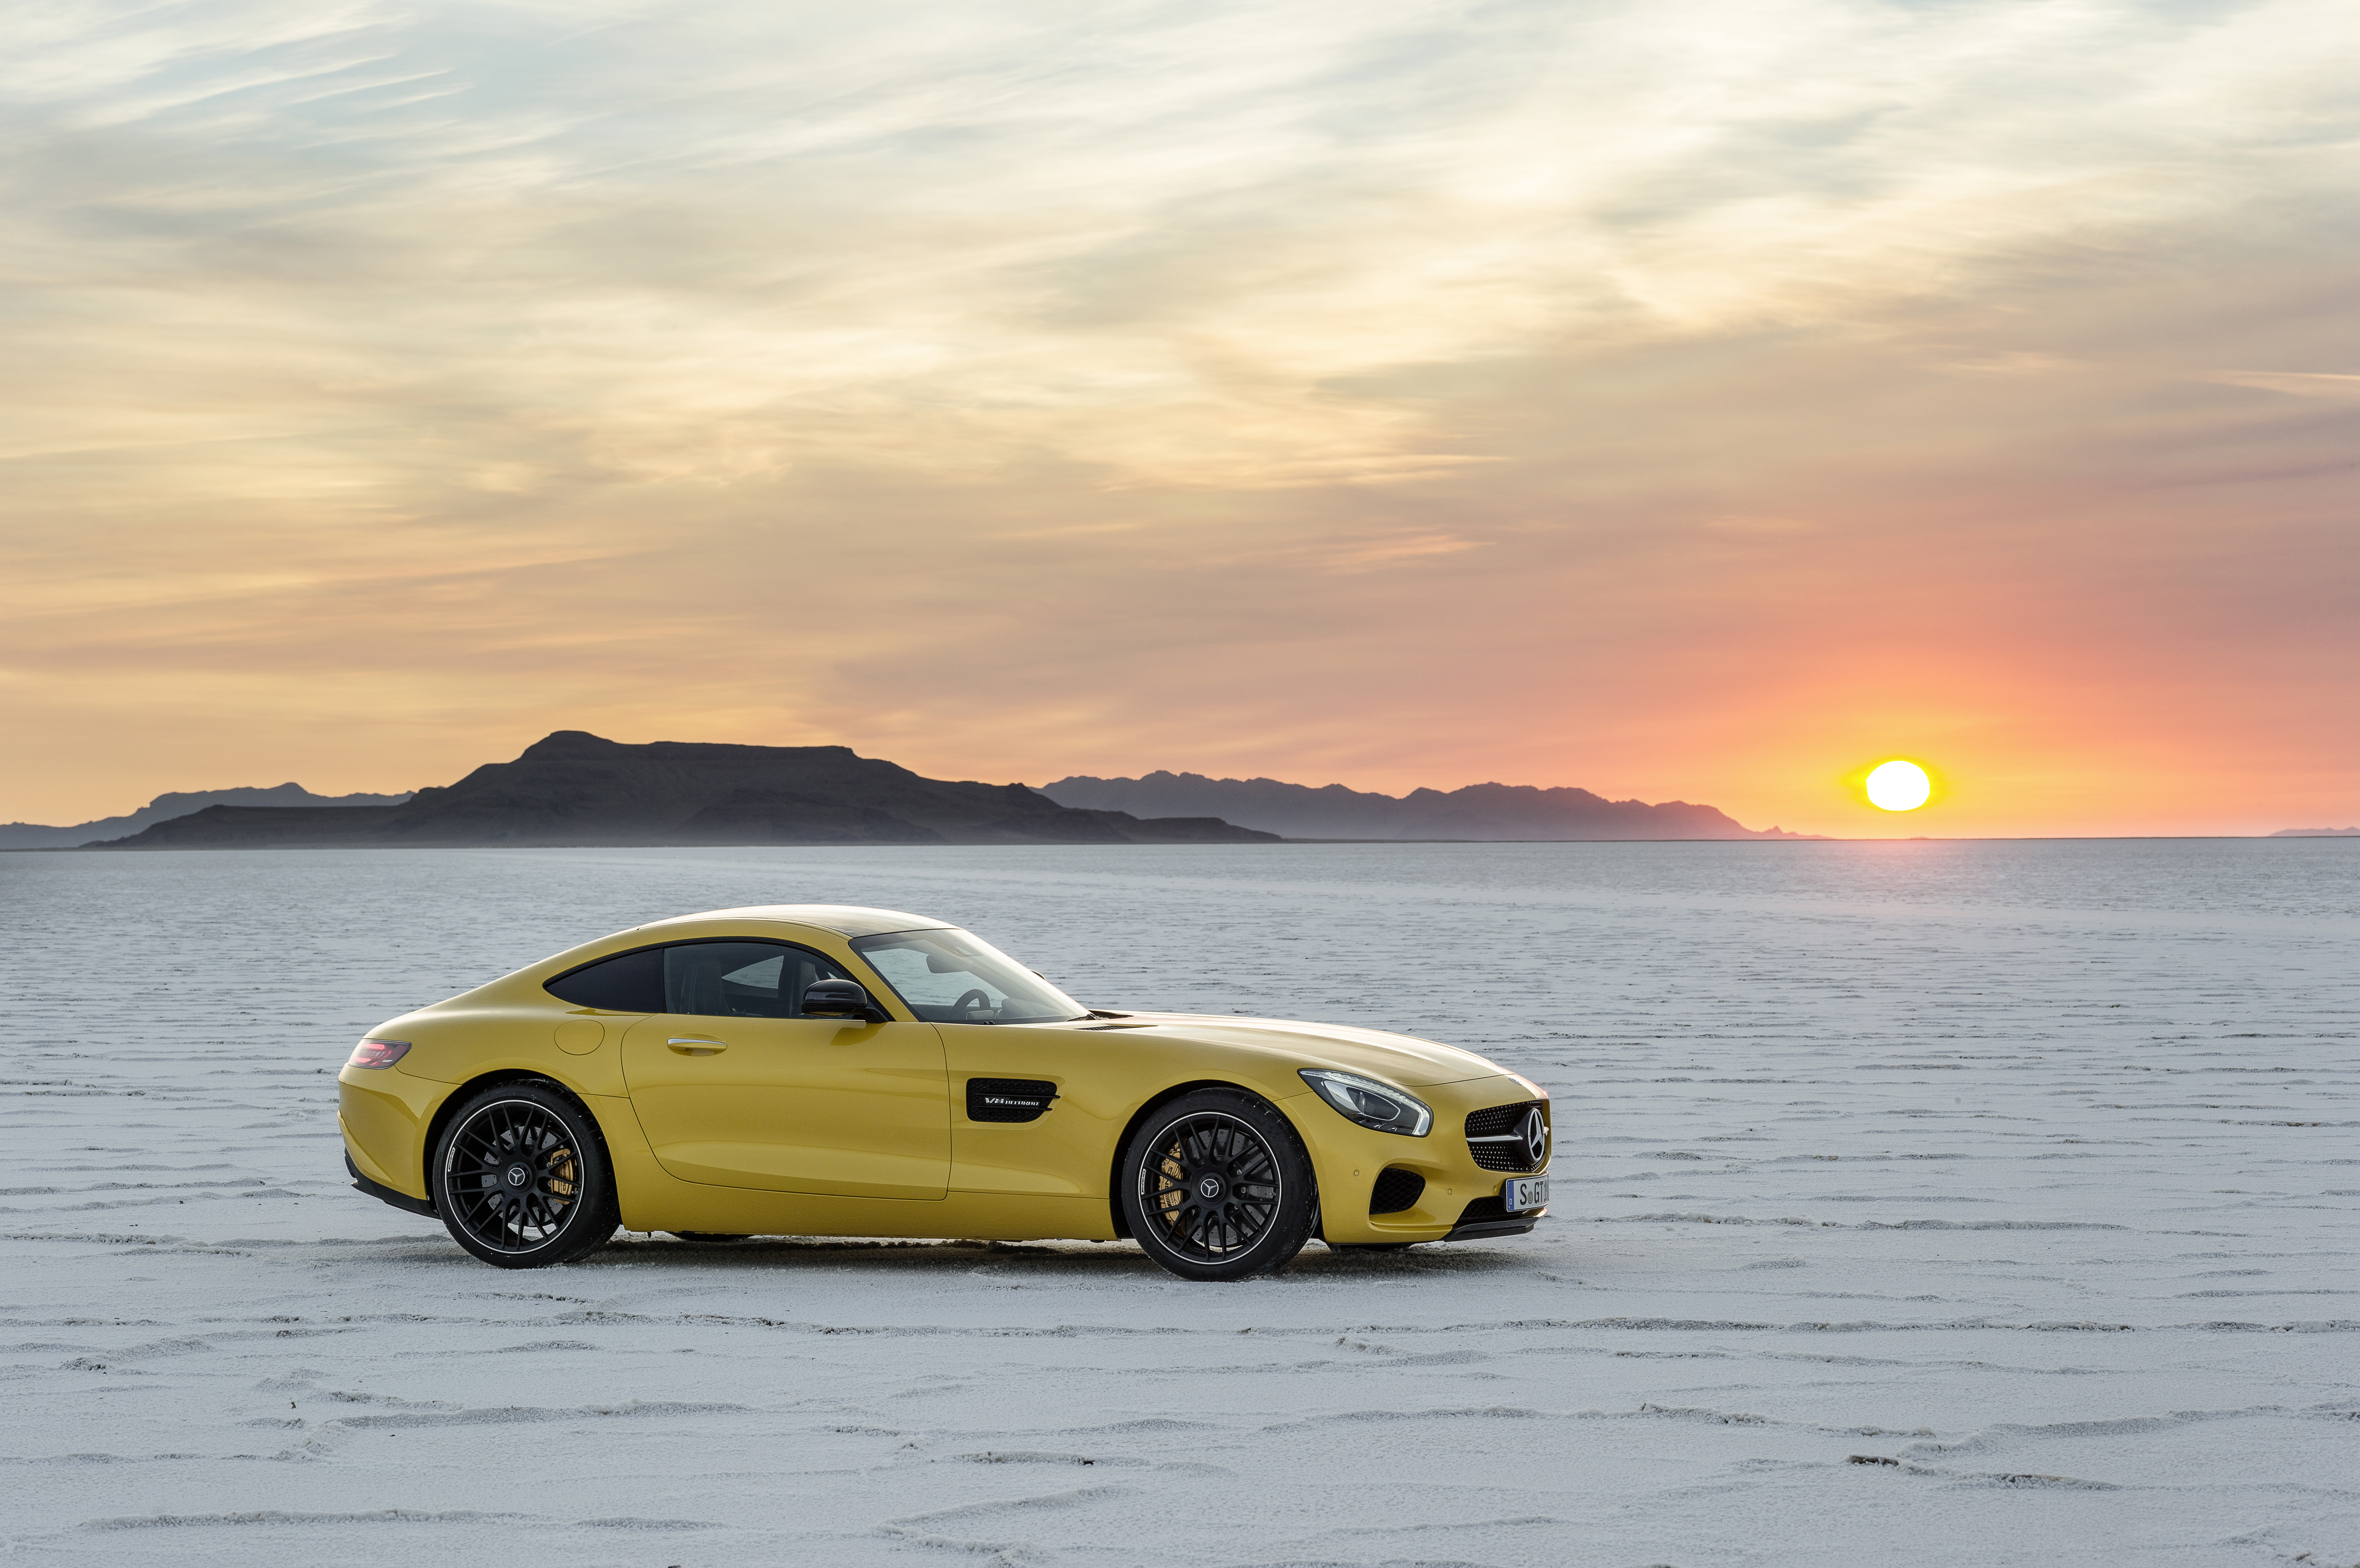 Mercedes Amg Gt >> Mercedes-AMG GT – the 911 fighter is finally revealed Paul Tan - Image 270493